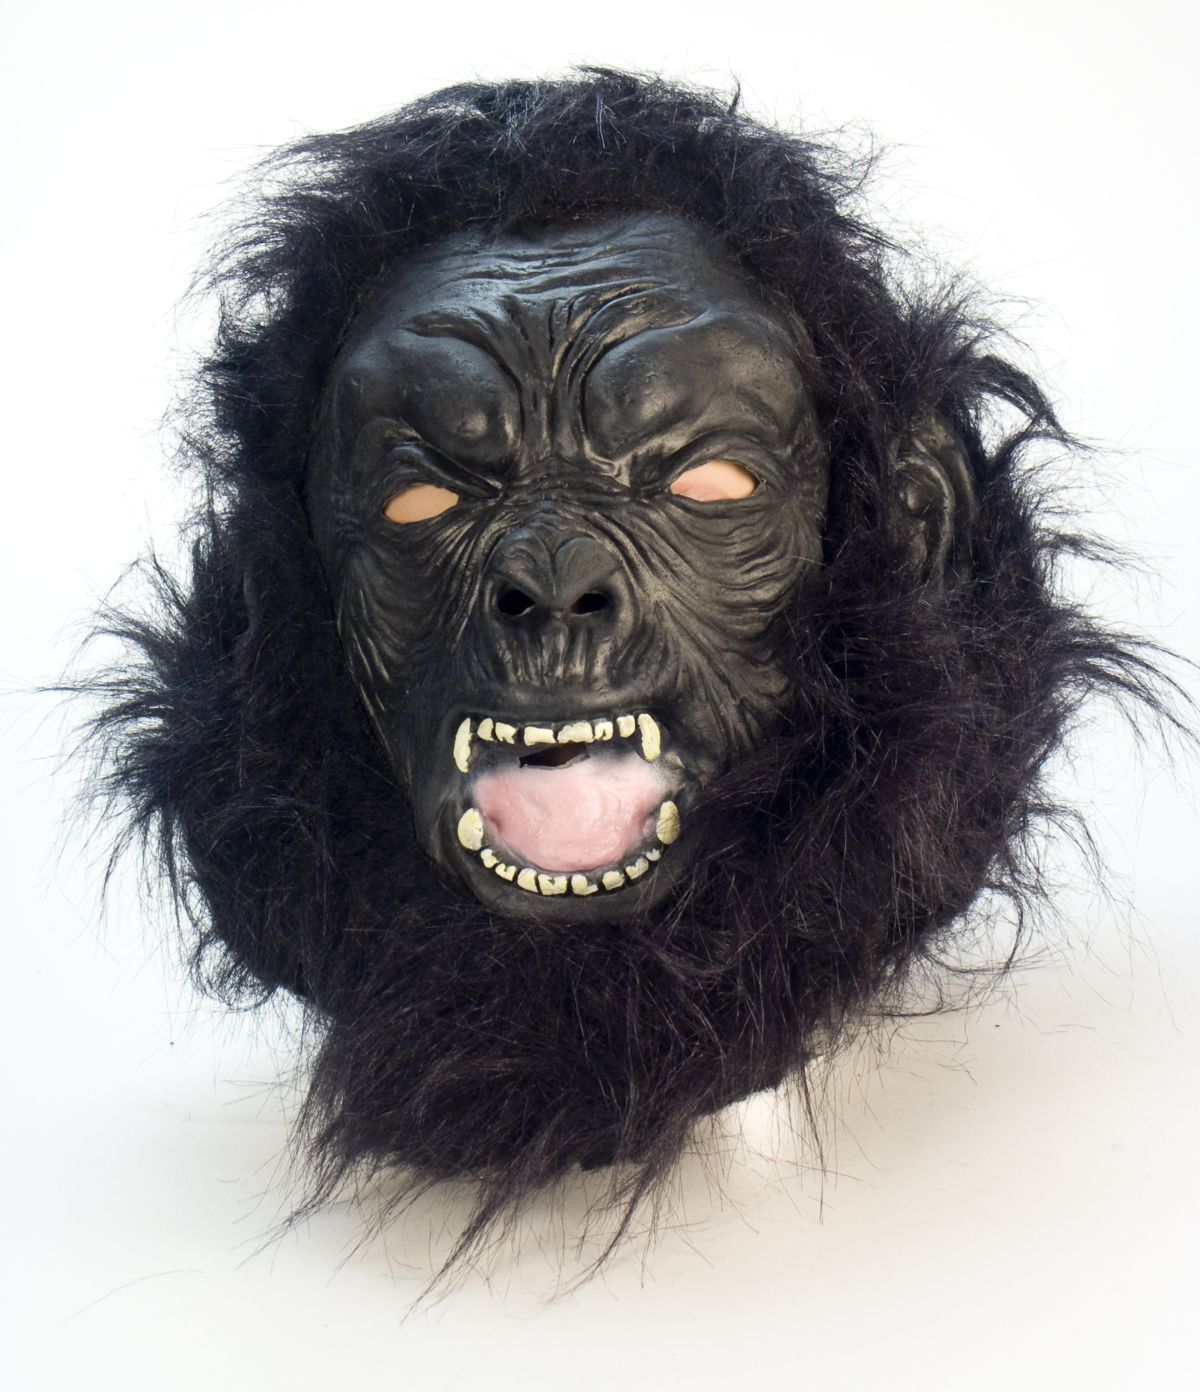 gorilla maske die sch ne maske bei. Black Bedroom Furniture Sets. Home Design Ideas